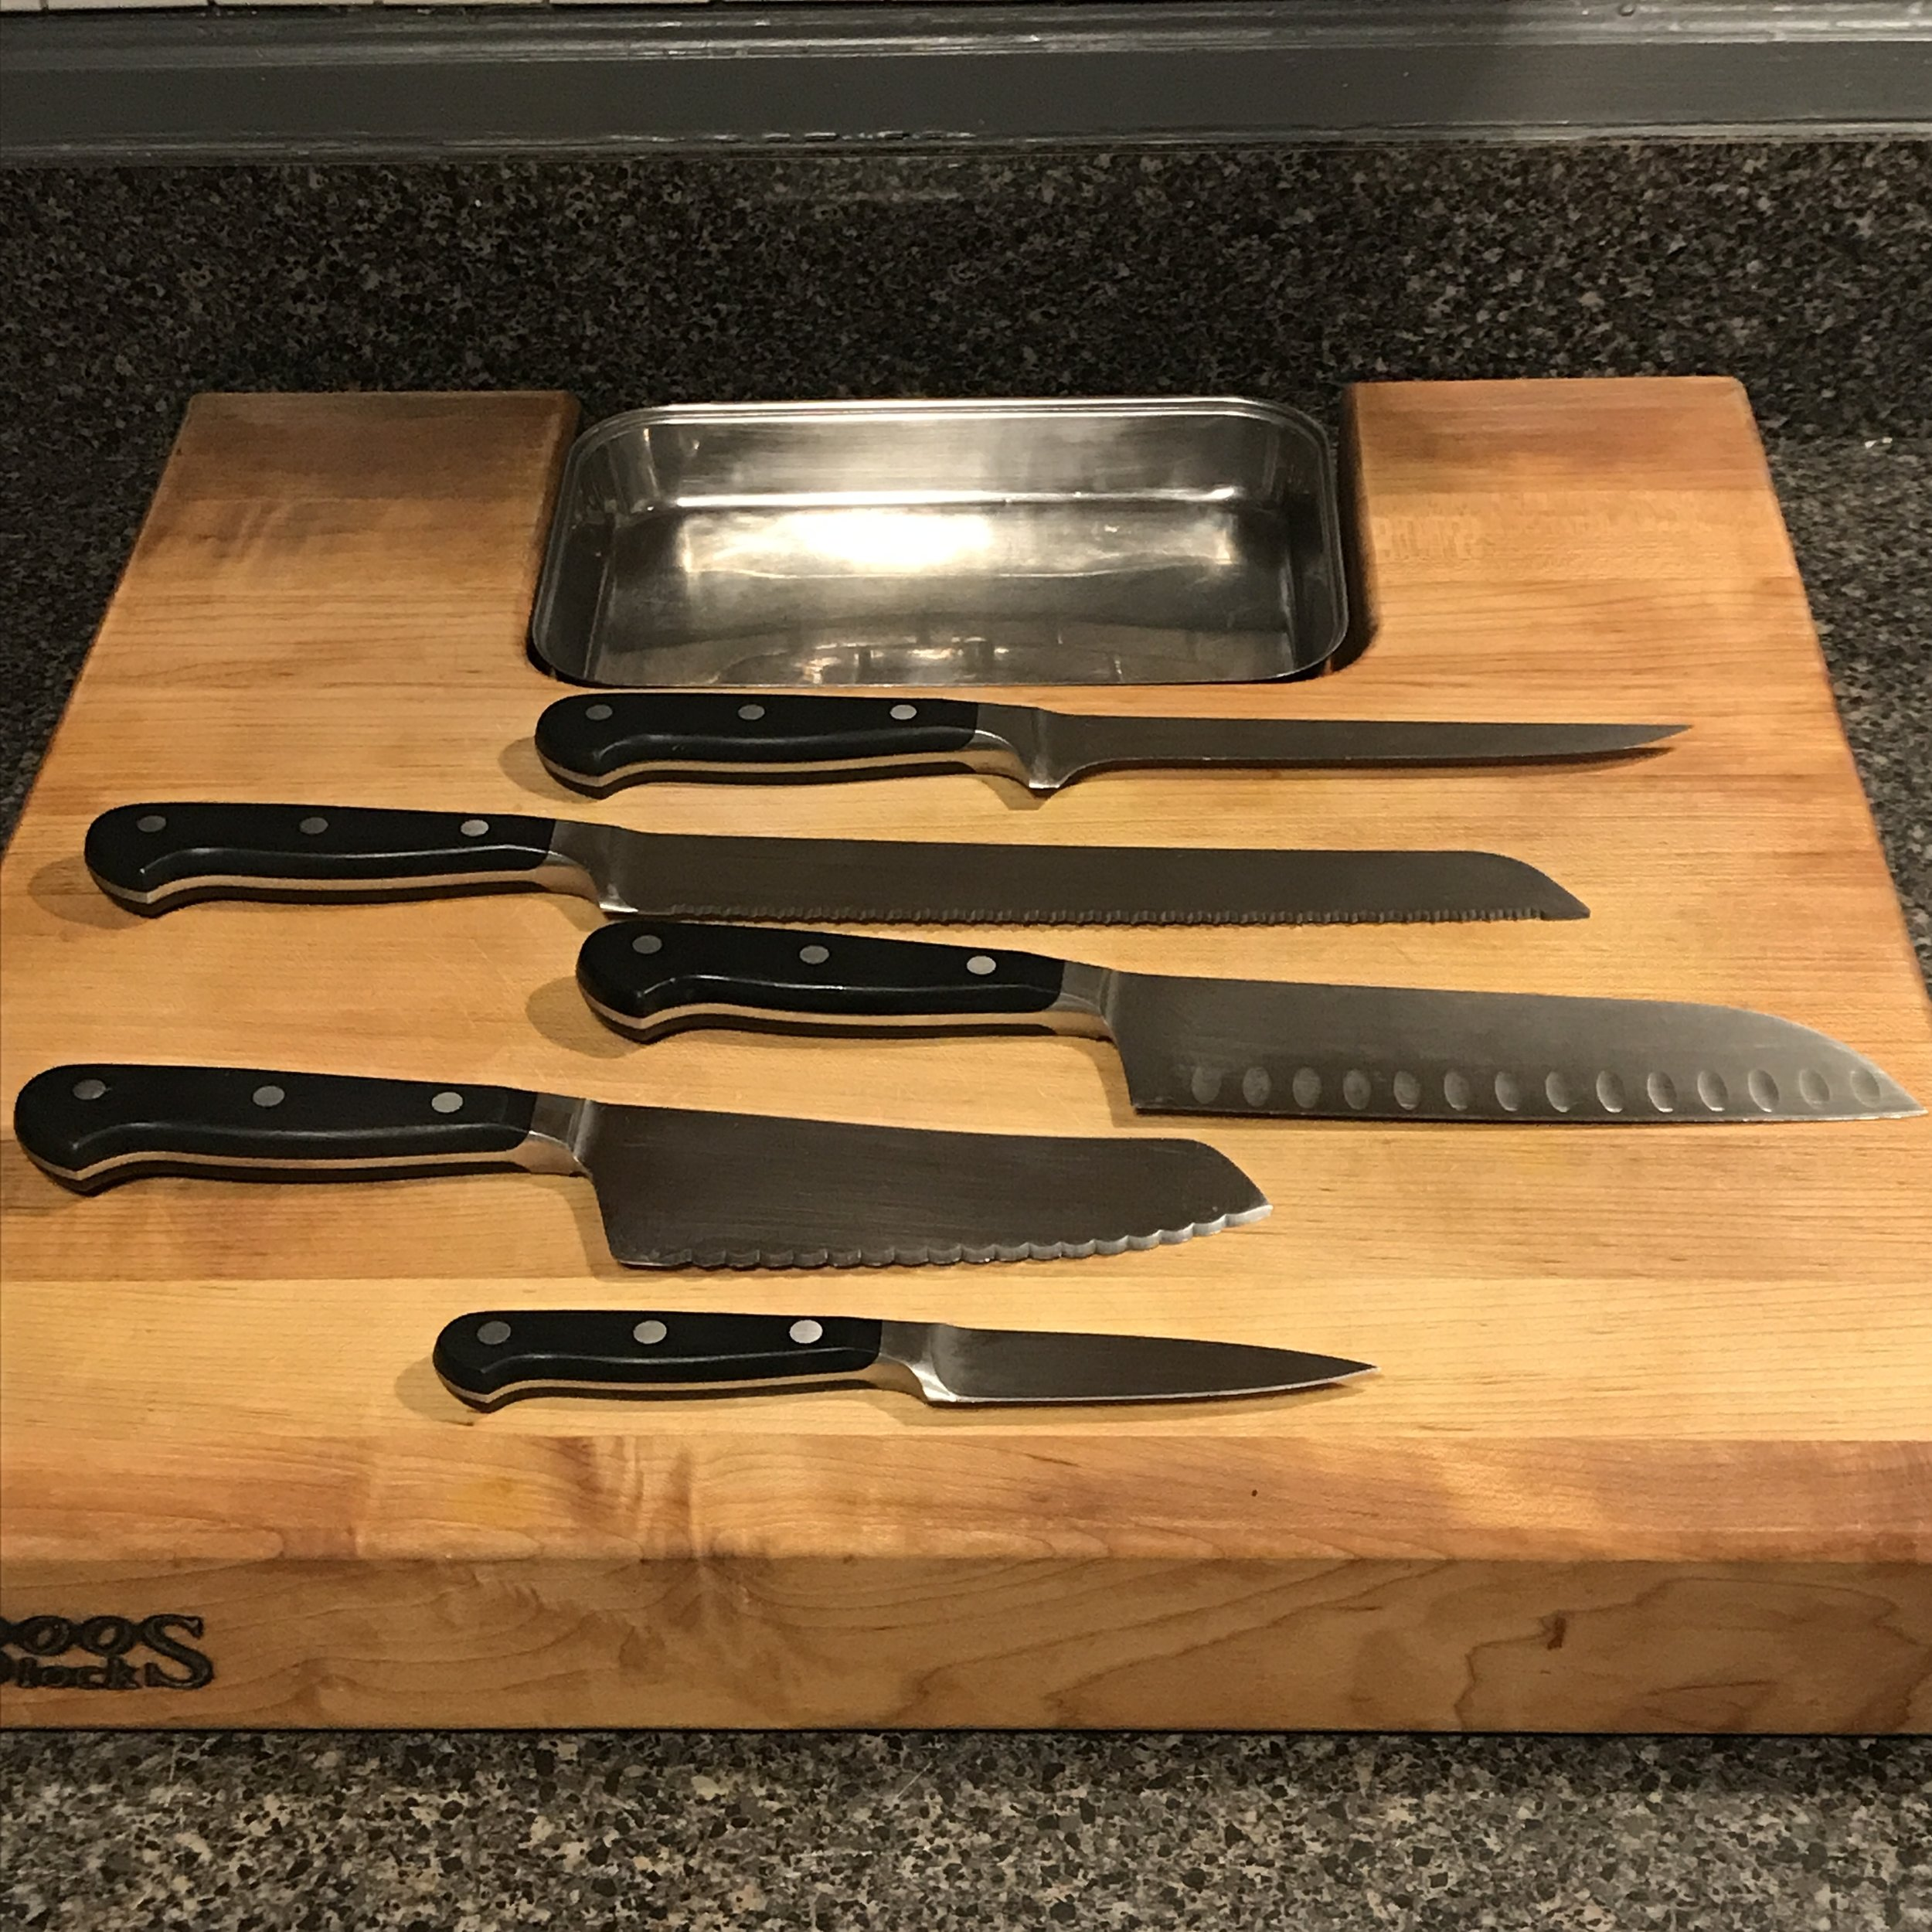 Knives that cut. - Sharp knives that cut which are easy and safe to use is the starting point in our kitchen. It's the tool that gets the most mileage. We invest knives from my favorite brand Wüsthof. They're our #1 staple (and we even bring them along with us when we travel around the world).Want to hone your knife skills? Check out Wüsthof's FREE knife skills classes.